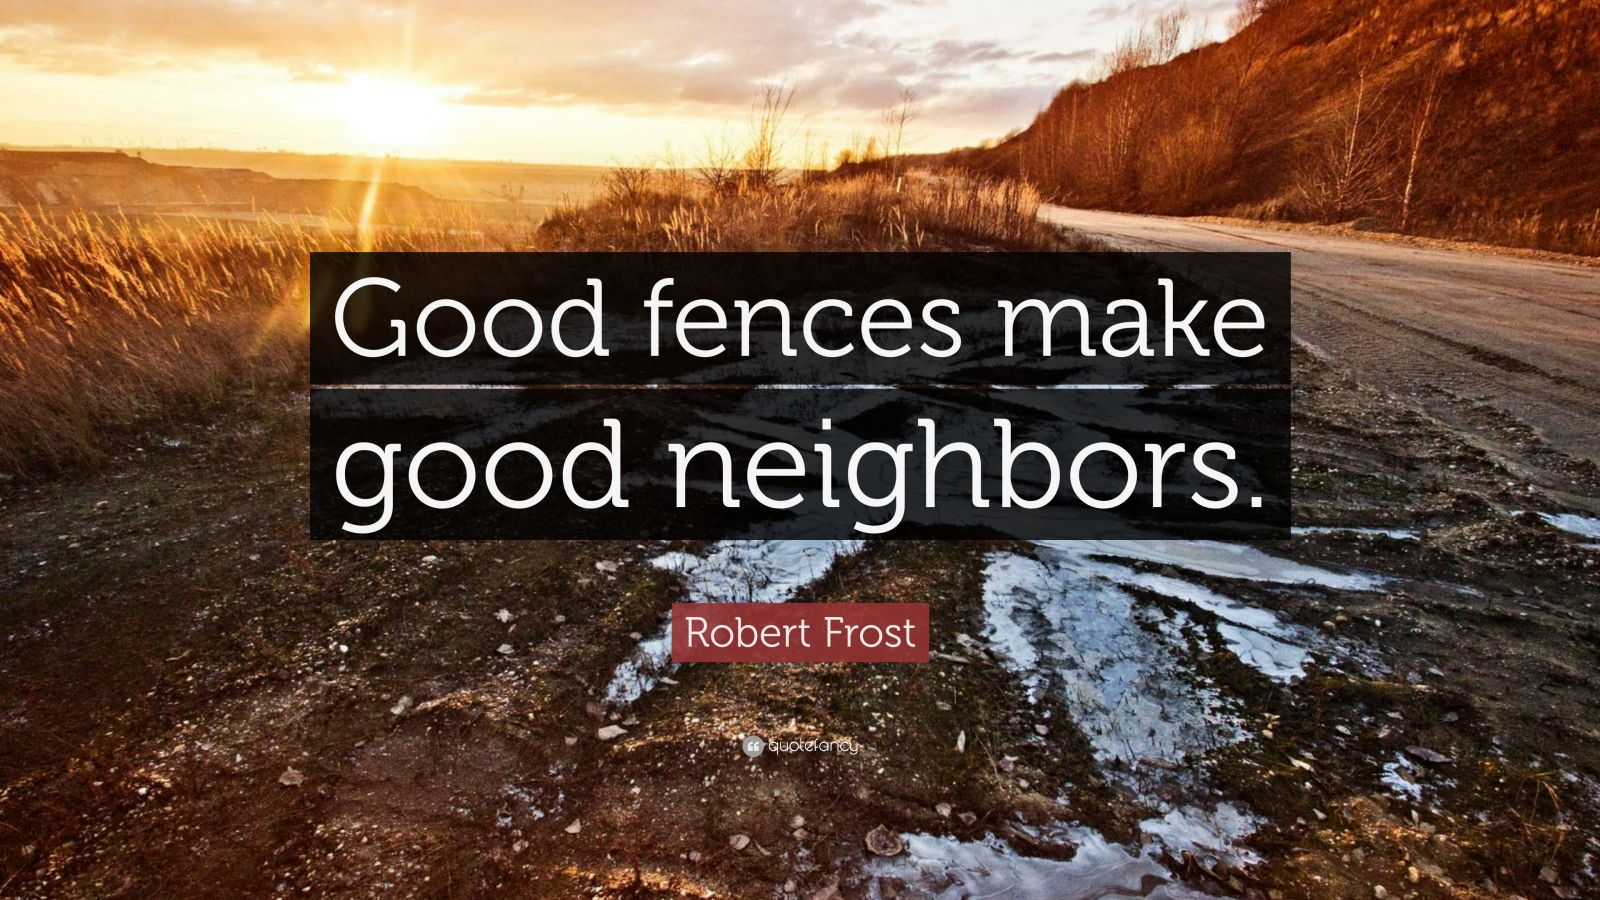 good fences make good neighbors Get an answer for 'in robert frost's mending wall what does good fences make good neighbors mean why does the speaker disagree' and find homework help for other mending wall questions at enotes.